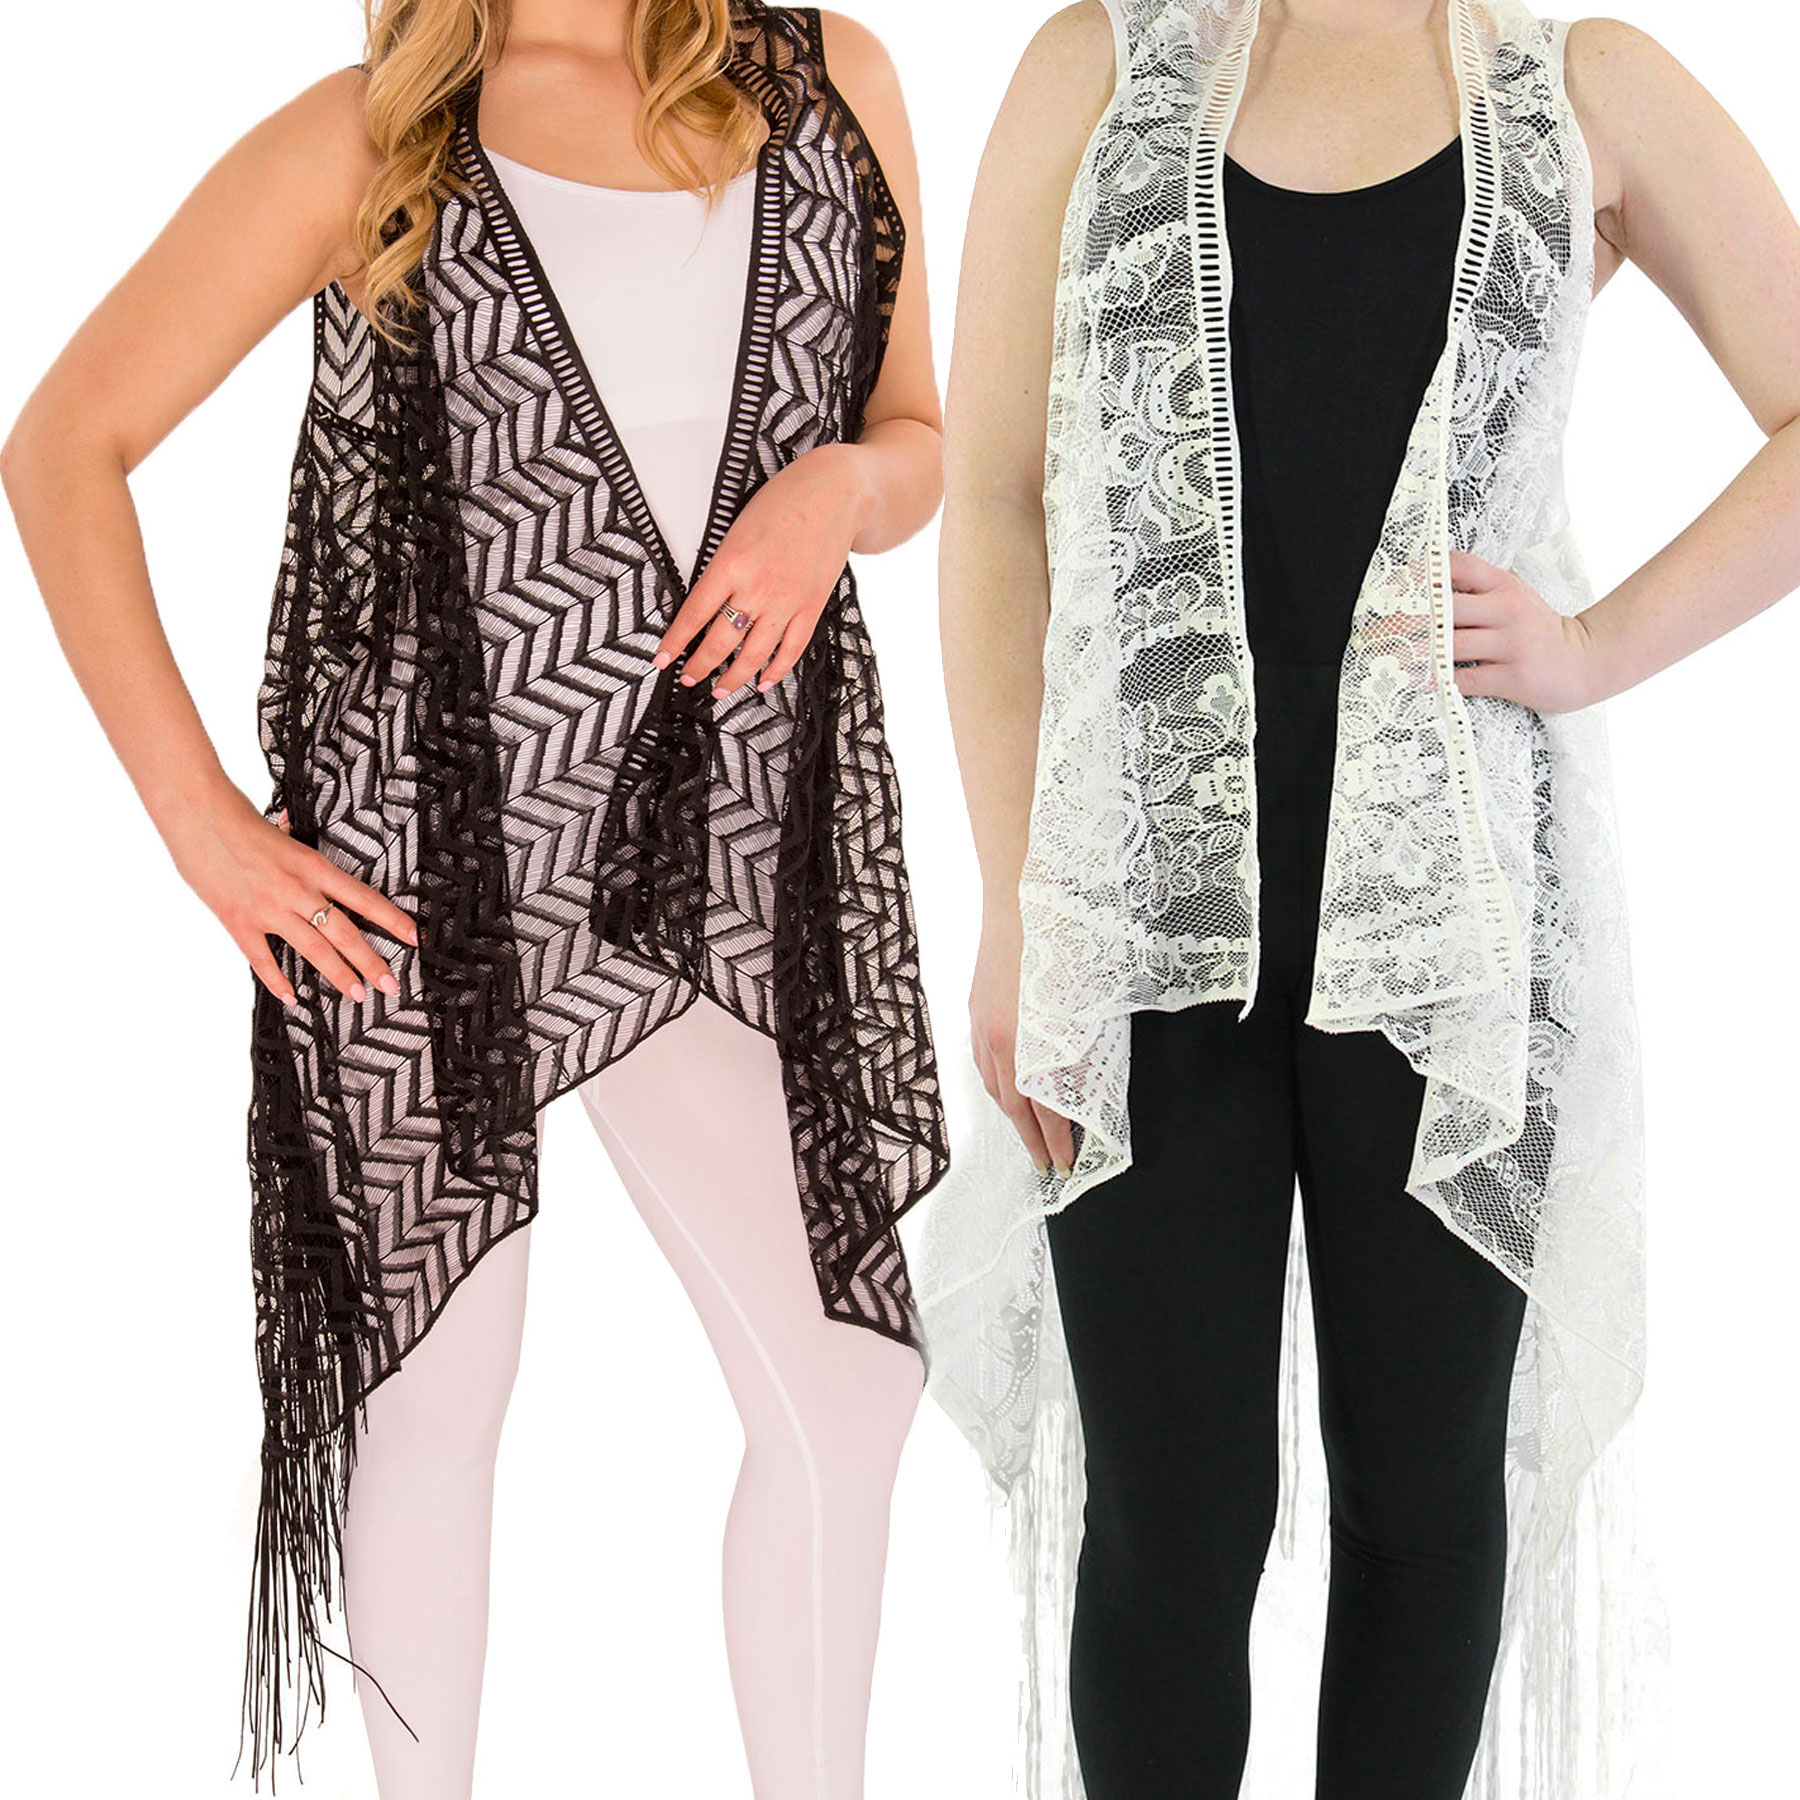 Vests - Lace w/ Fringe 1273 & 1274*